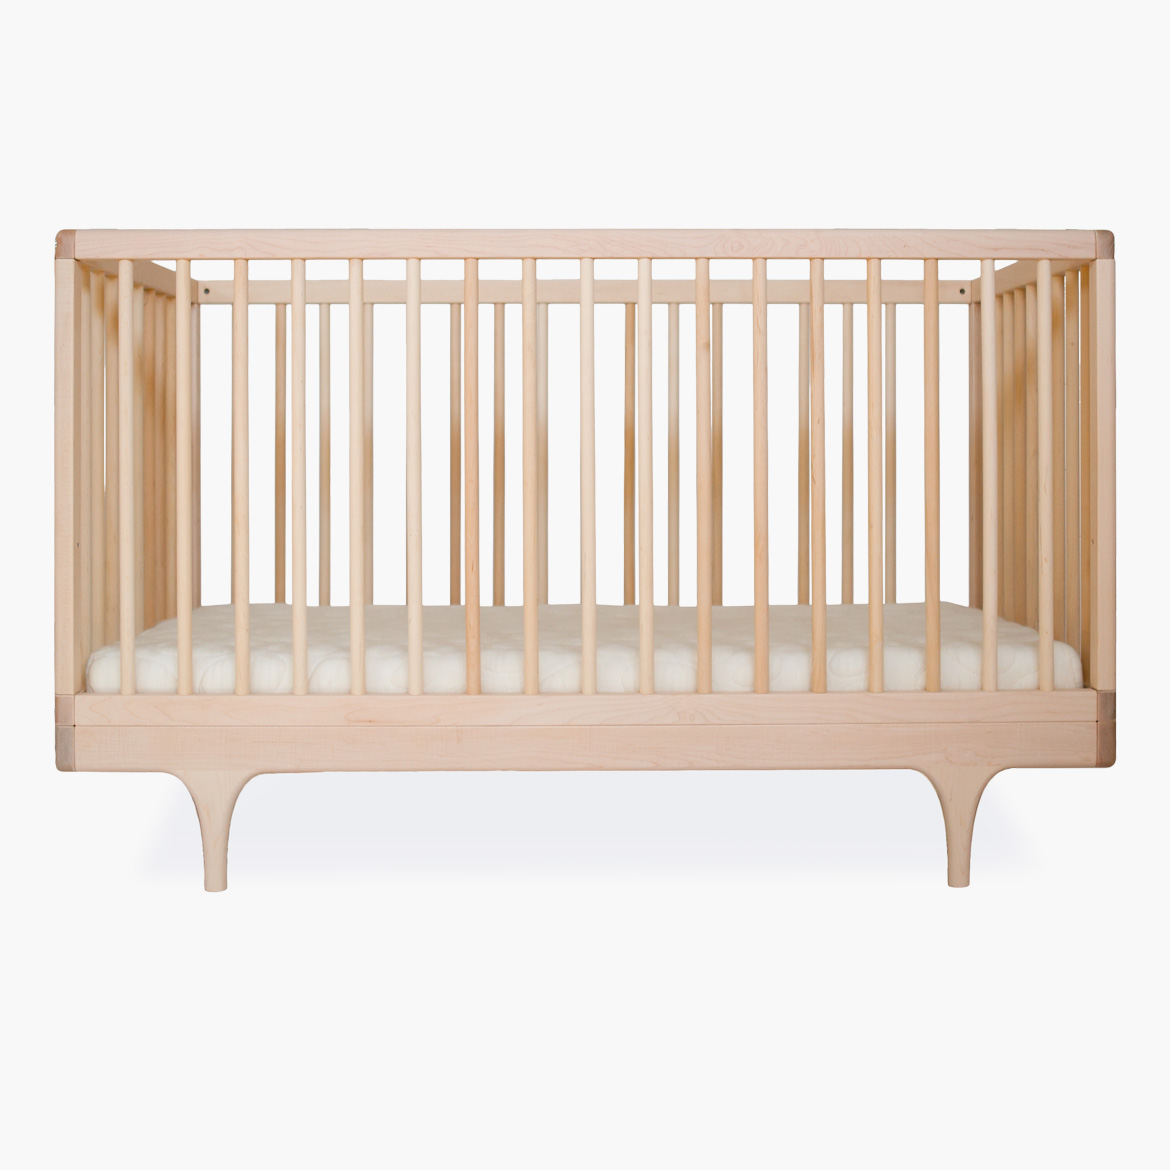 Caravan Crib - Modern Solid Wood Convertible Crib